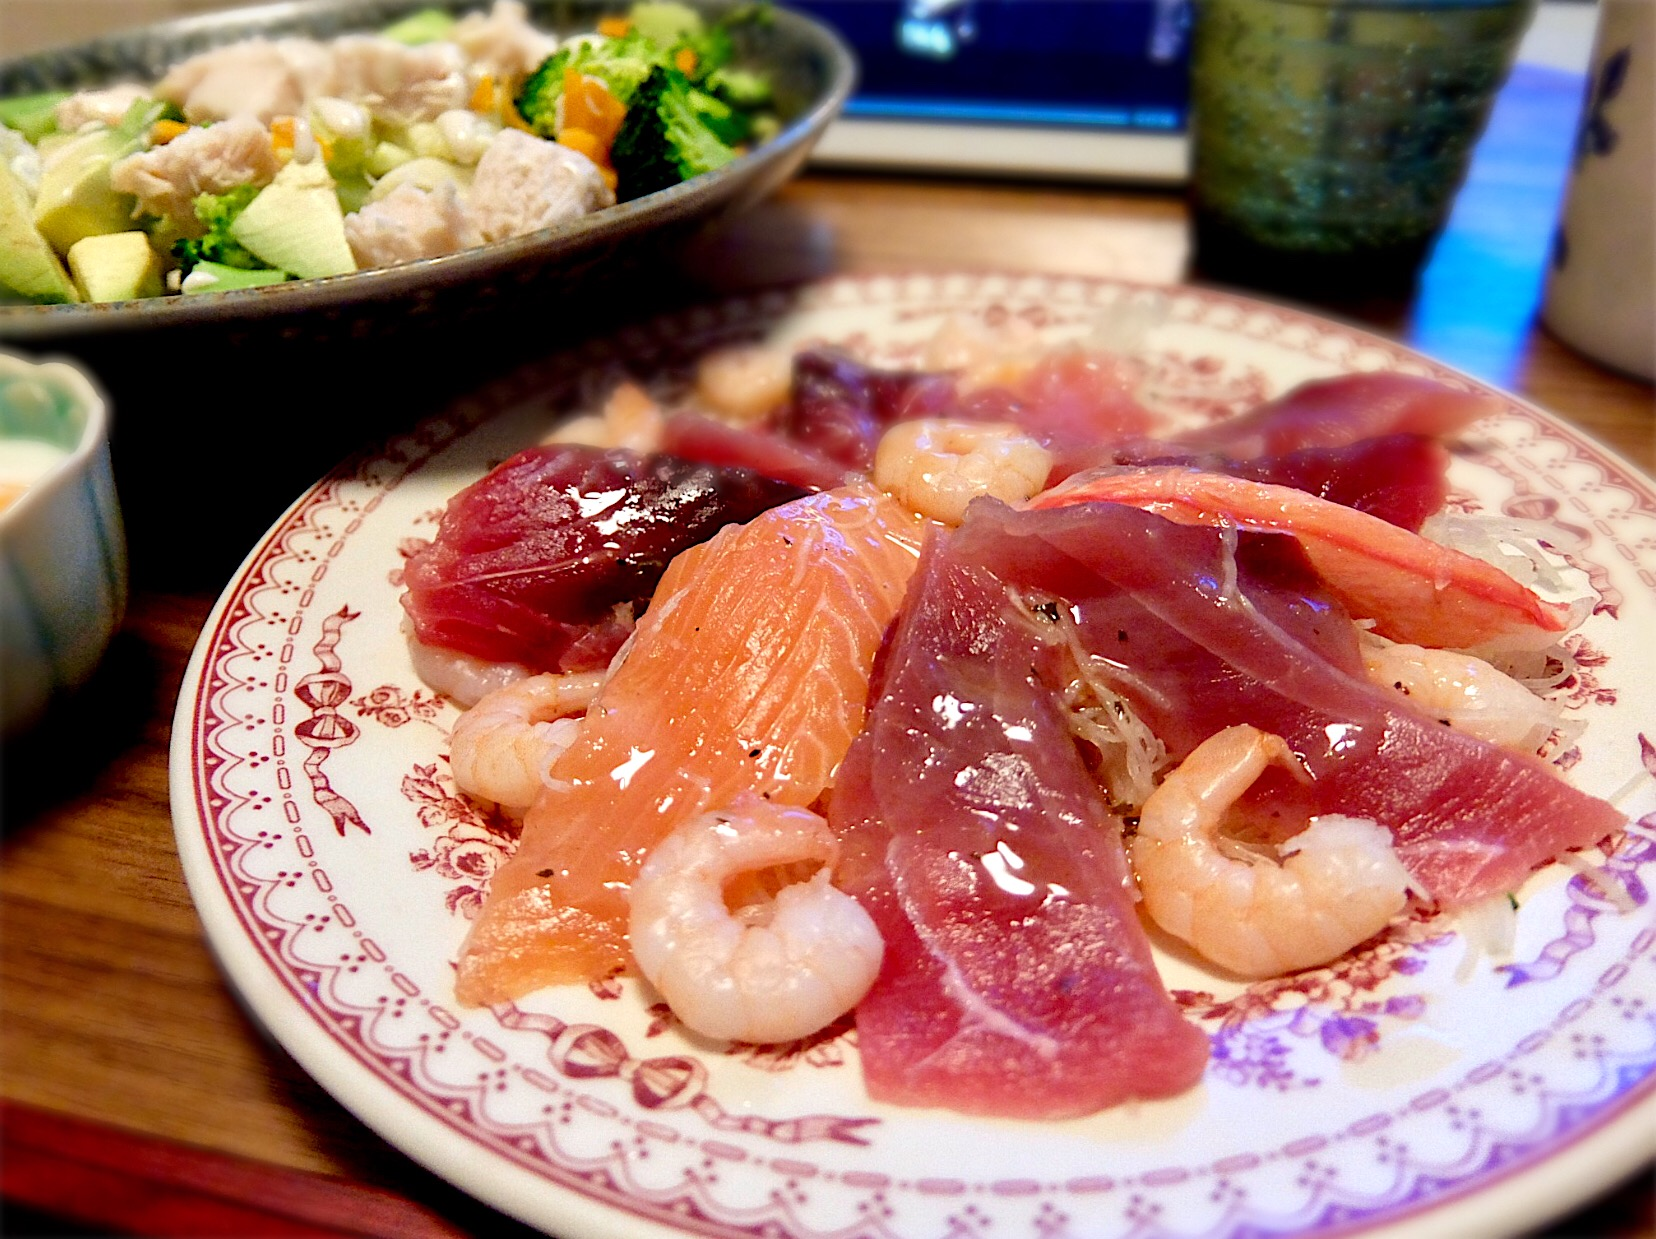 2017/12/05 #dinner Japanese ruby fish ceviche, Caesar salad, Sirataki noodles, Soft boild egg (ハチビキ(赤鯖)のセビーチェ、シーザーサラダ、温泉卵)